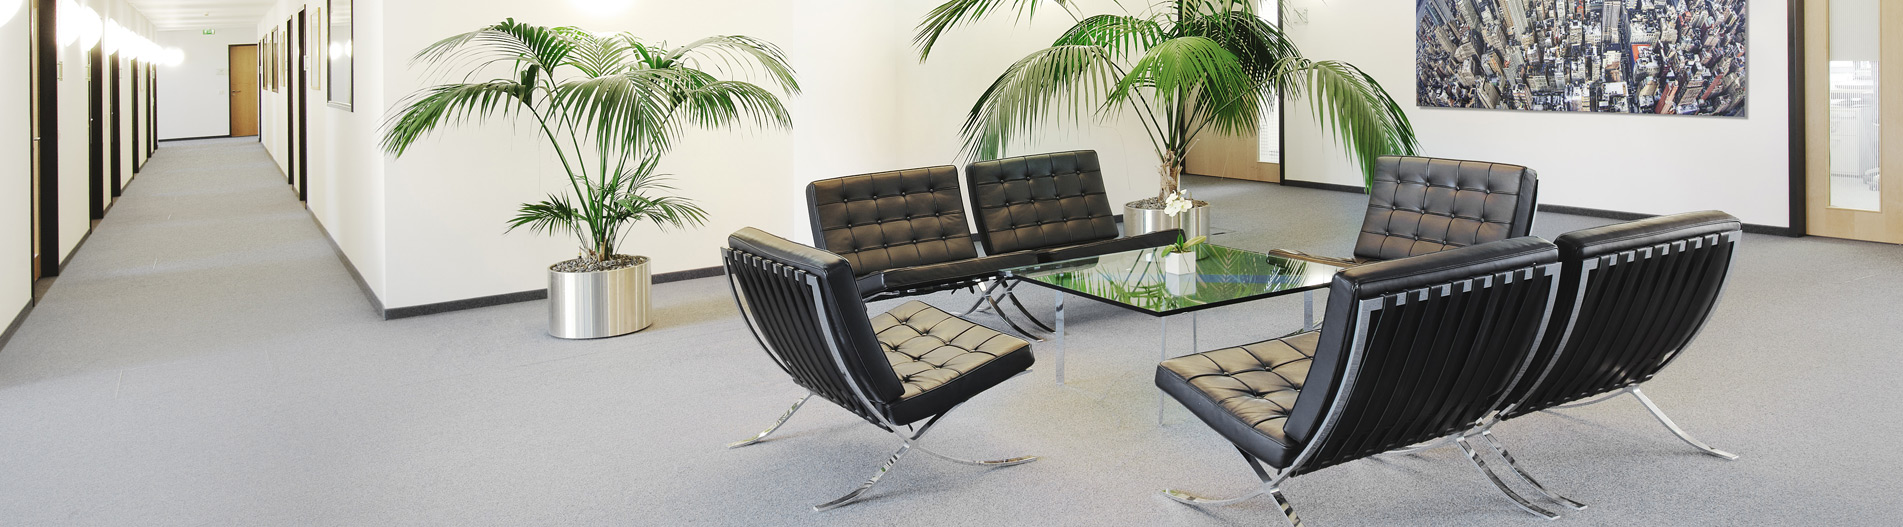 Rent your office in the north of Stuttgart